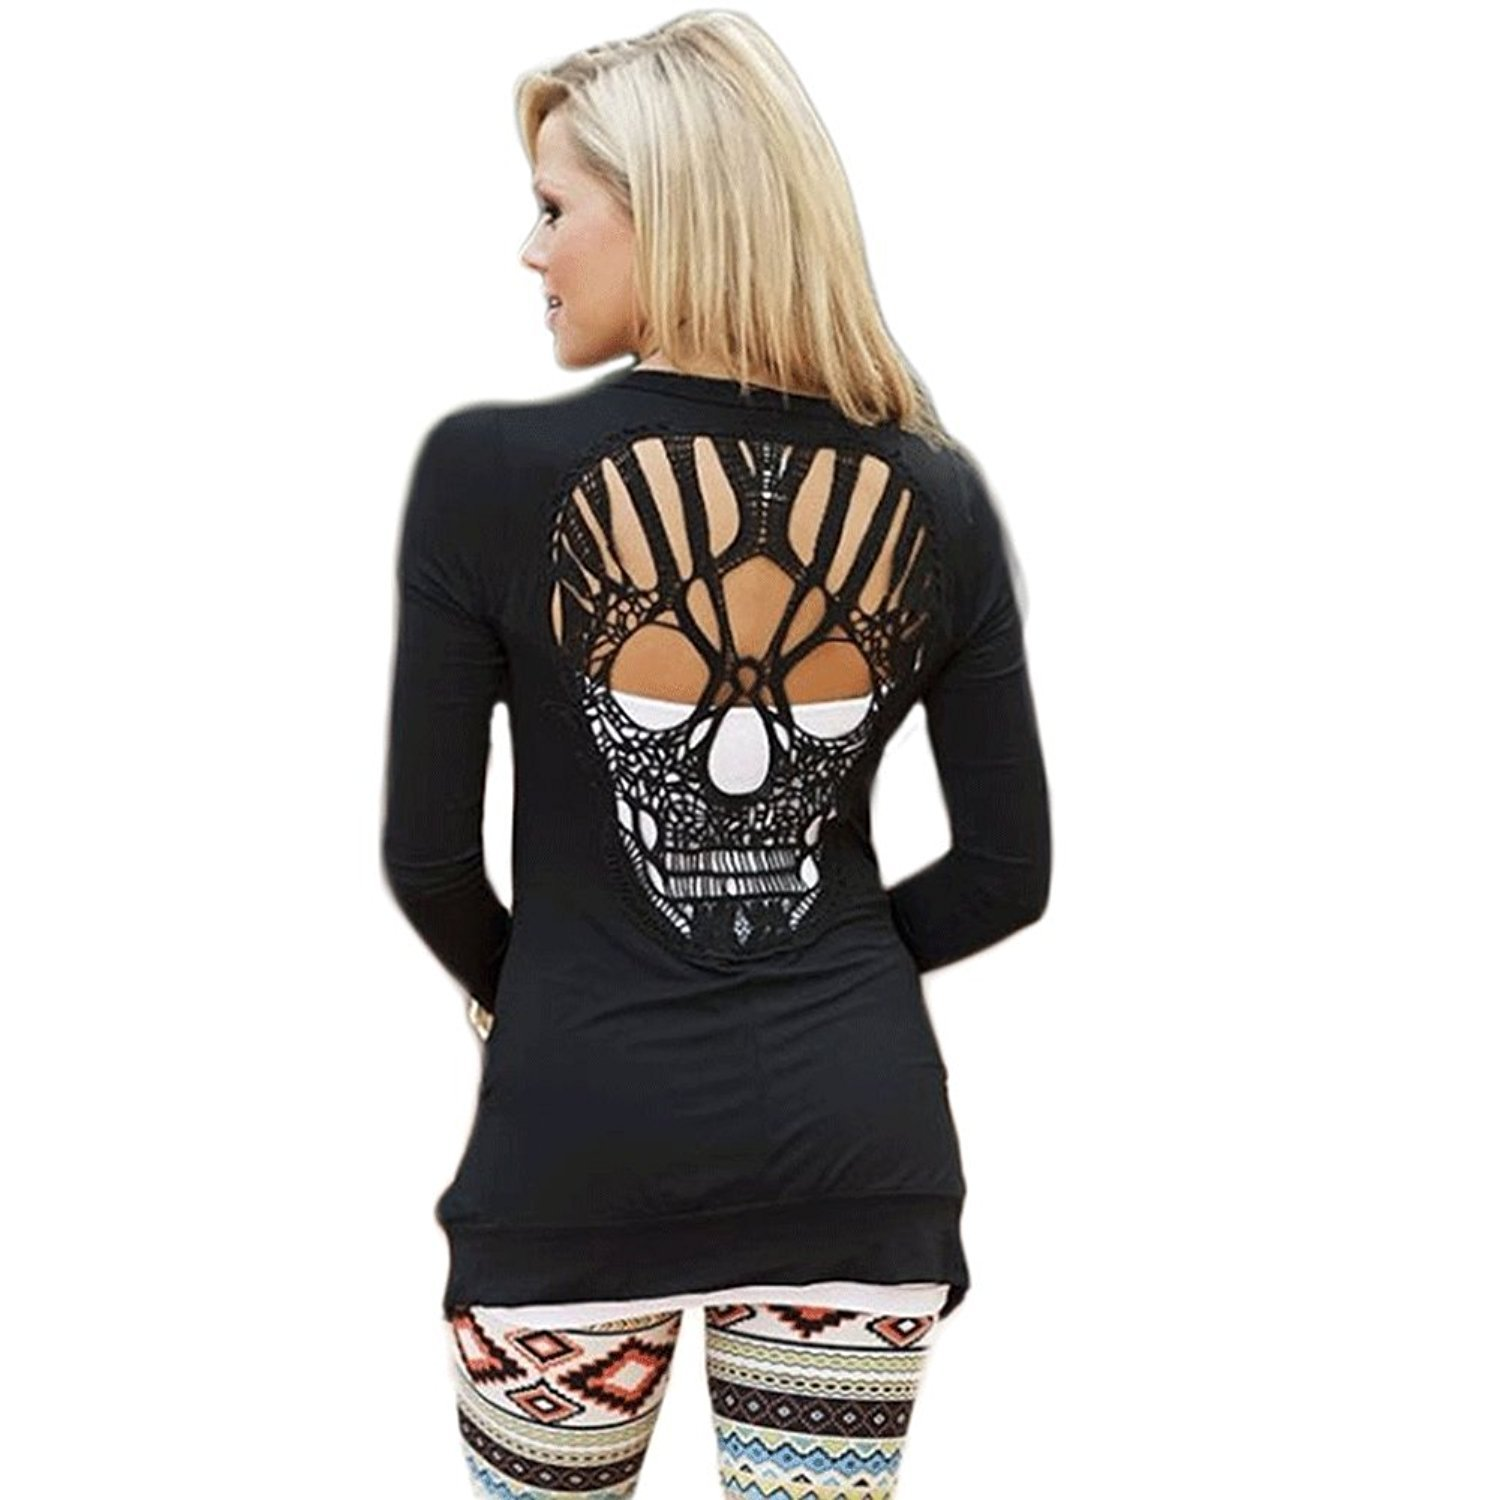 WLLW Womens Long Sleeve Open Front Back Cut Out Skull Cardigan Tops